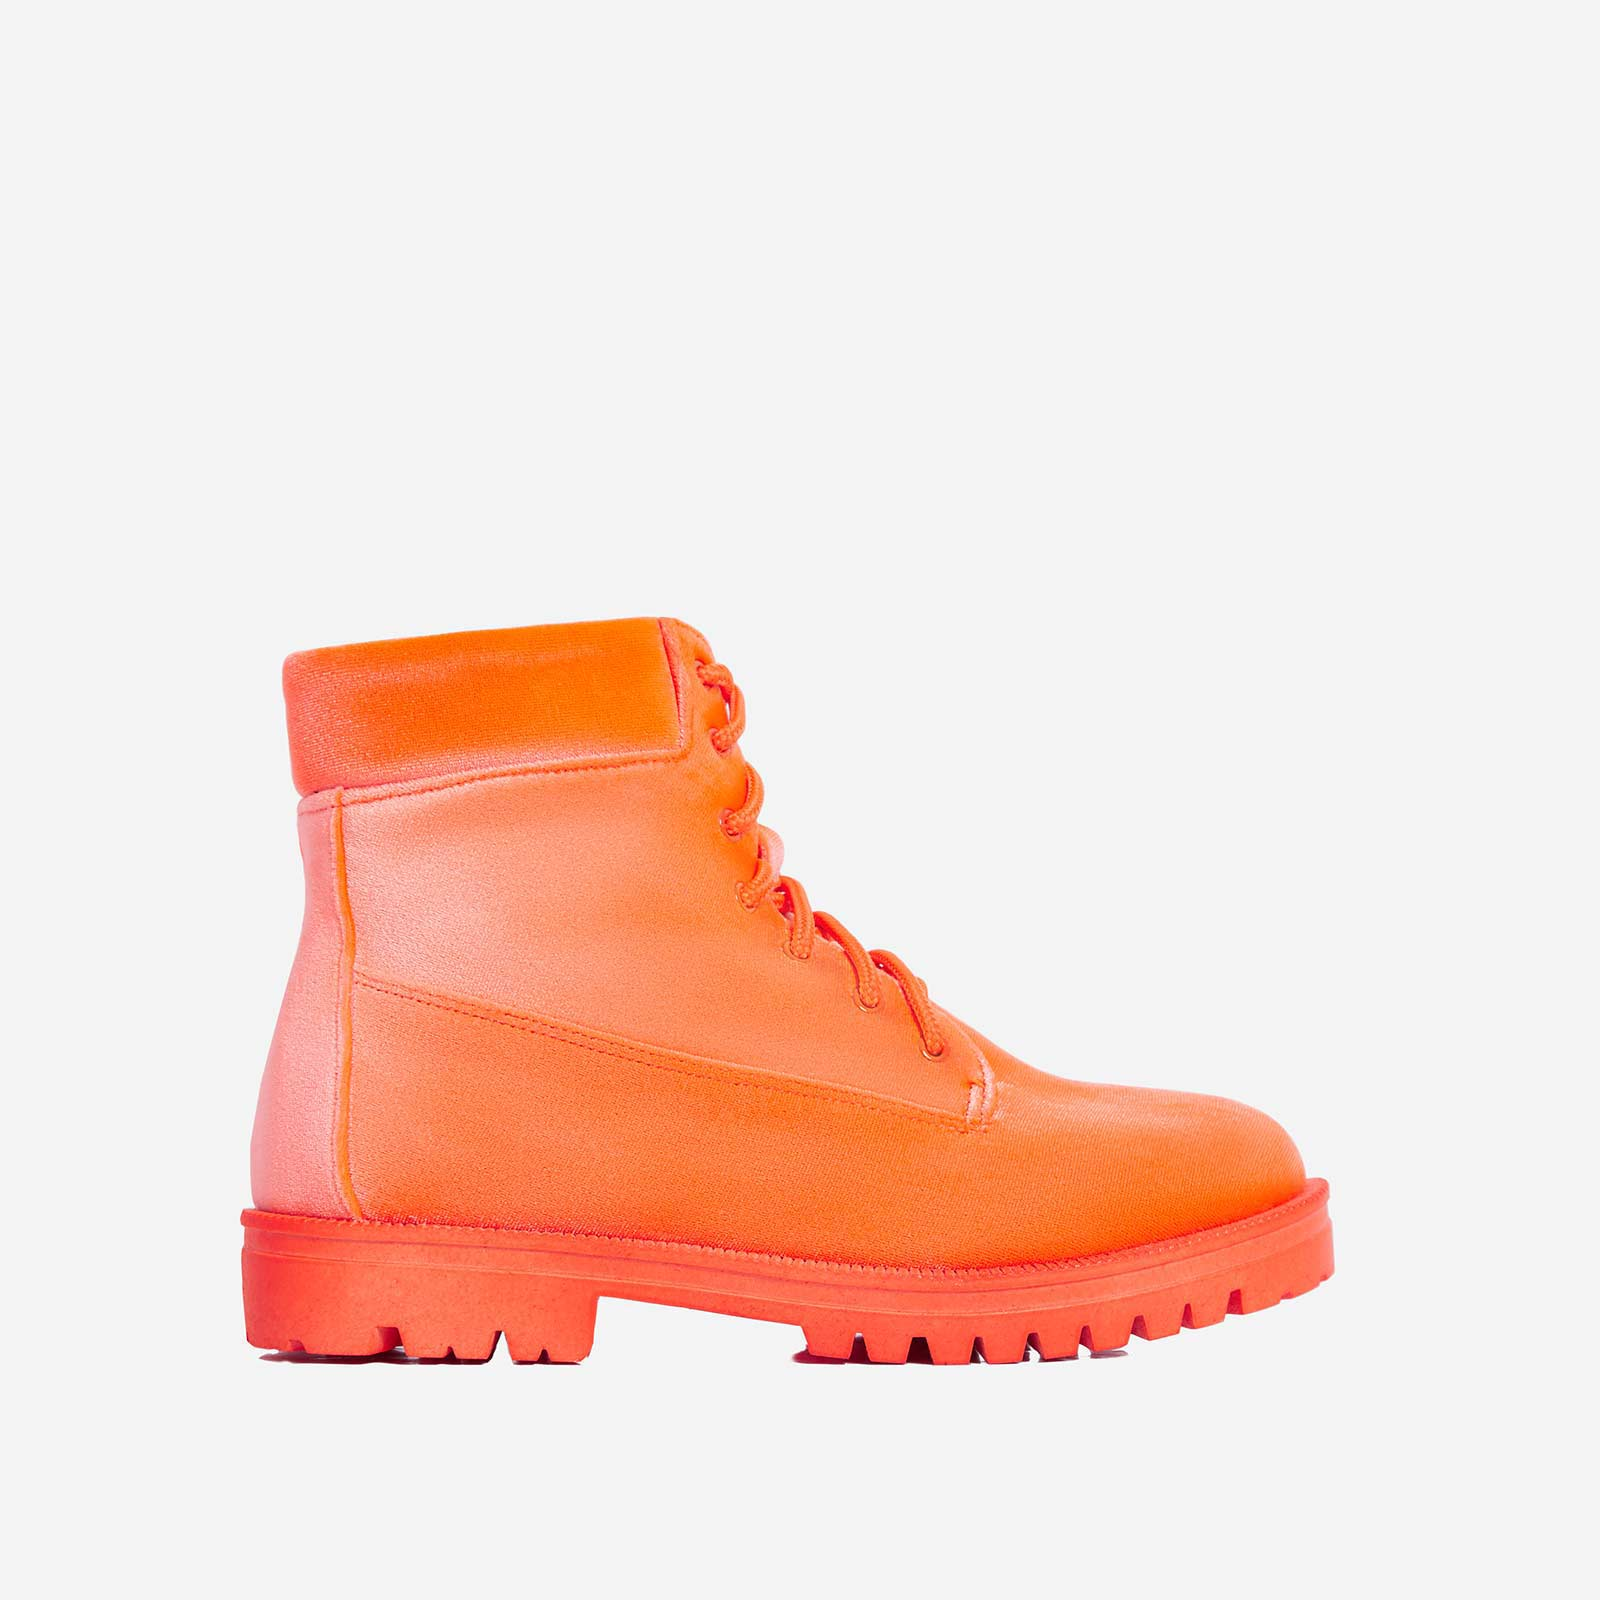 Highlighter Lace Up Ankle Boot In Orange Faux Suede